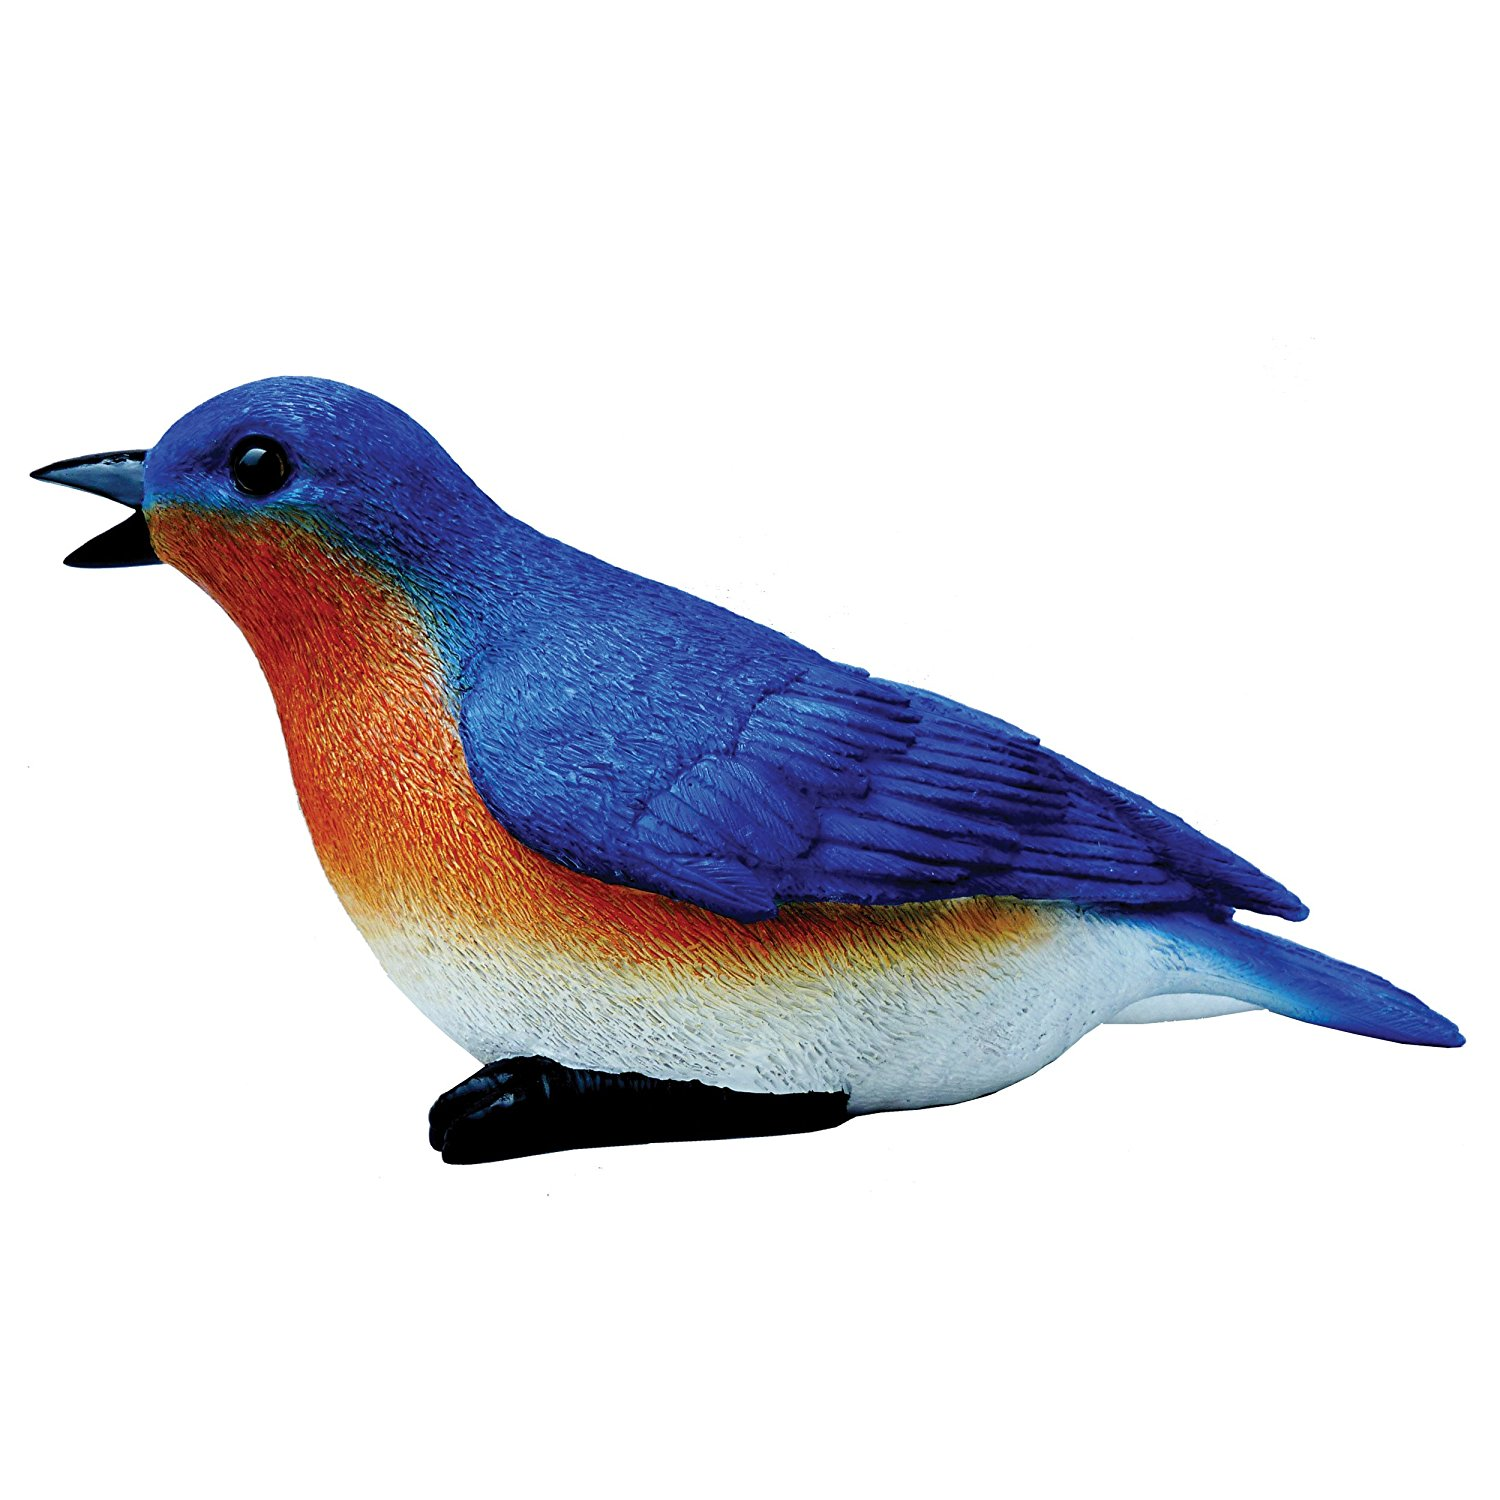 80033 Blue Bird Outdoor Statue, Chirper, Part of the chir...